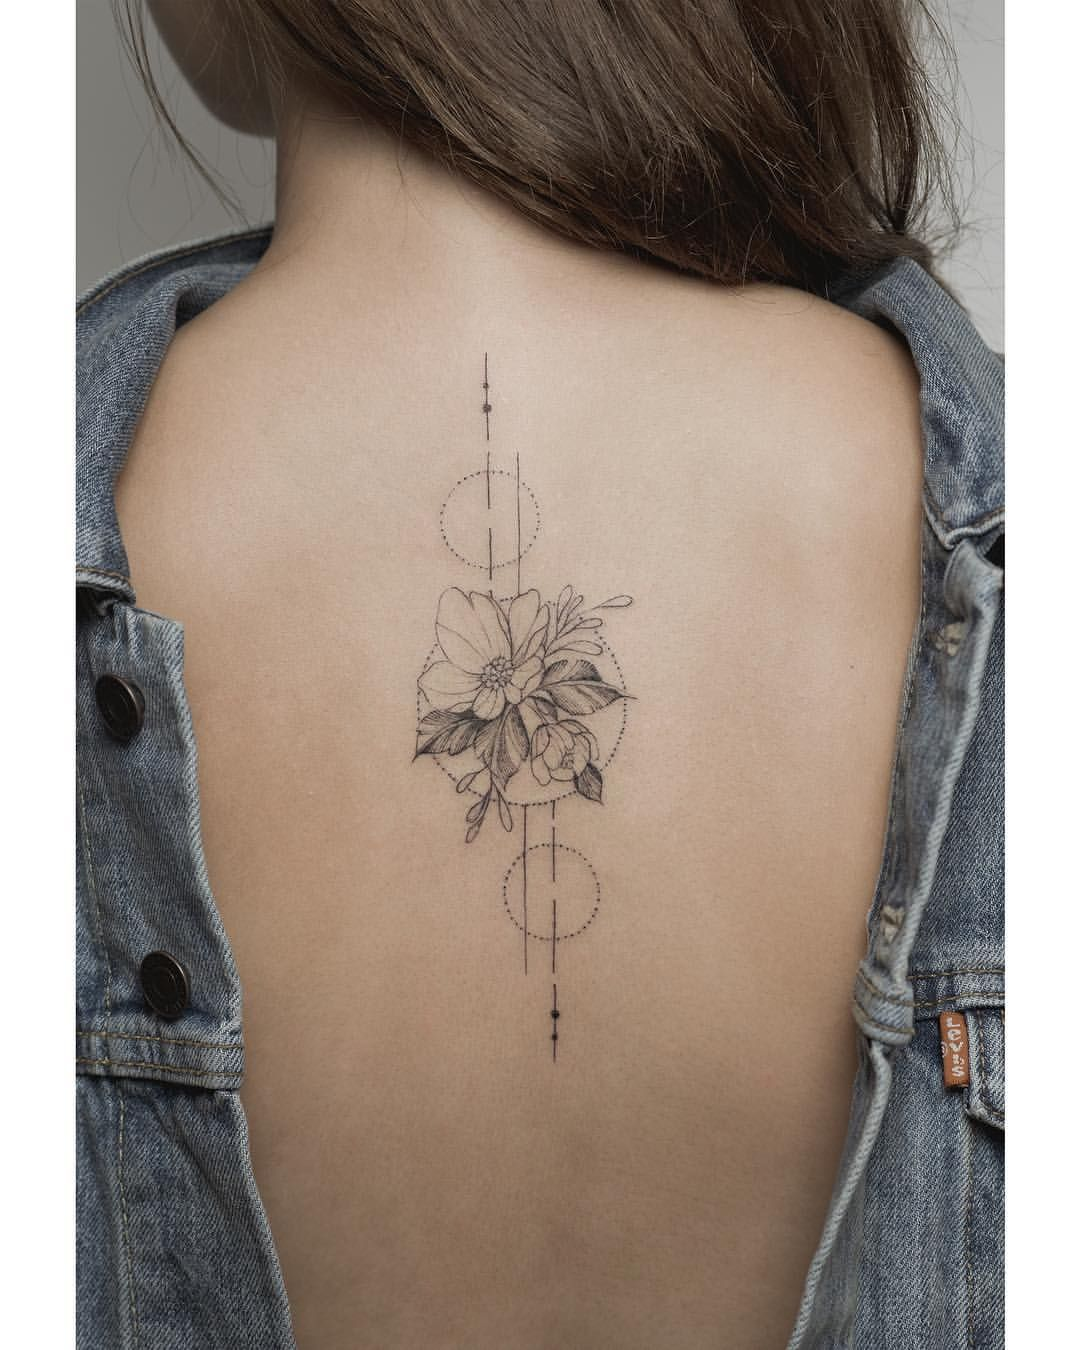 Pin by Amber Looslie on INK Petite tattoos, Tattoos